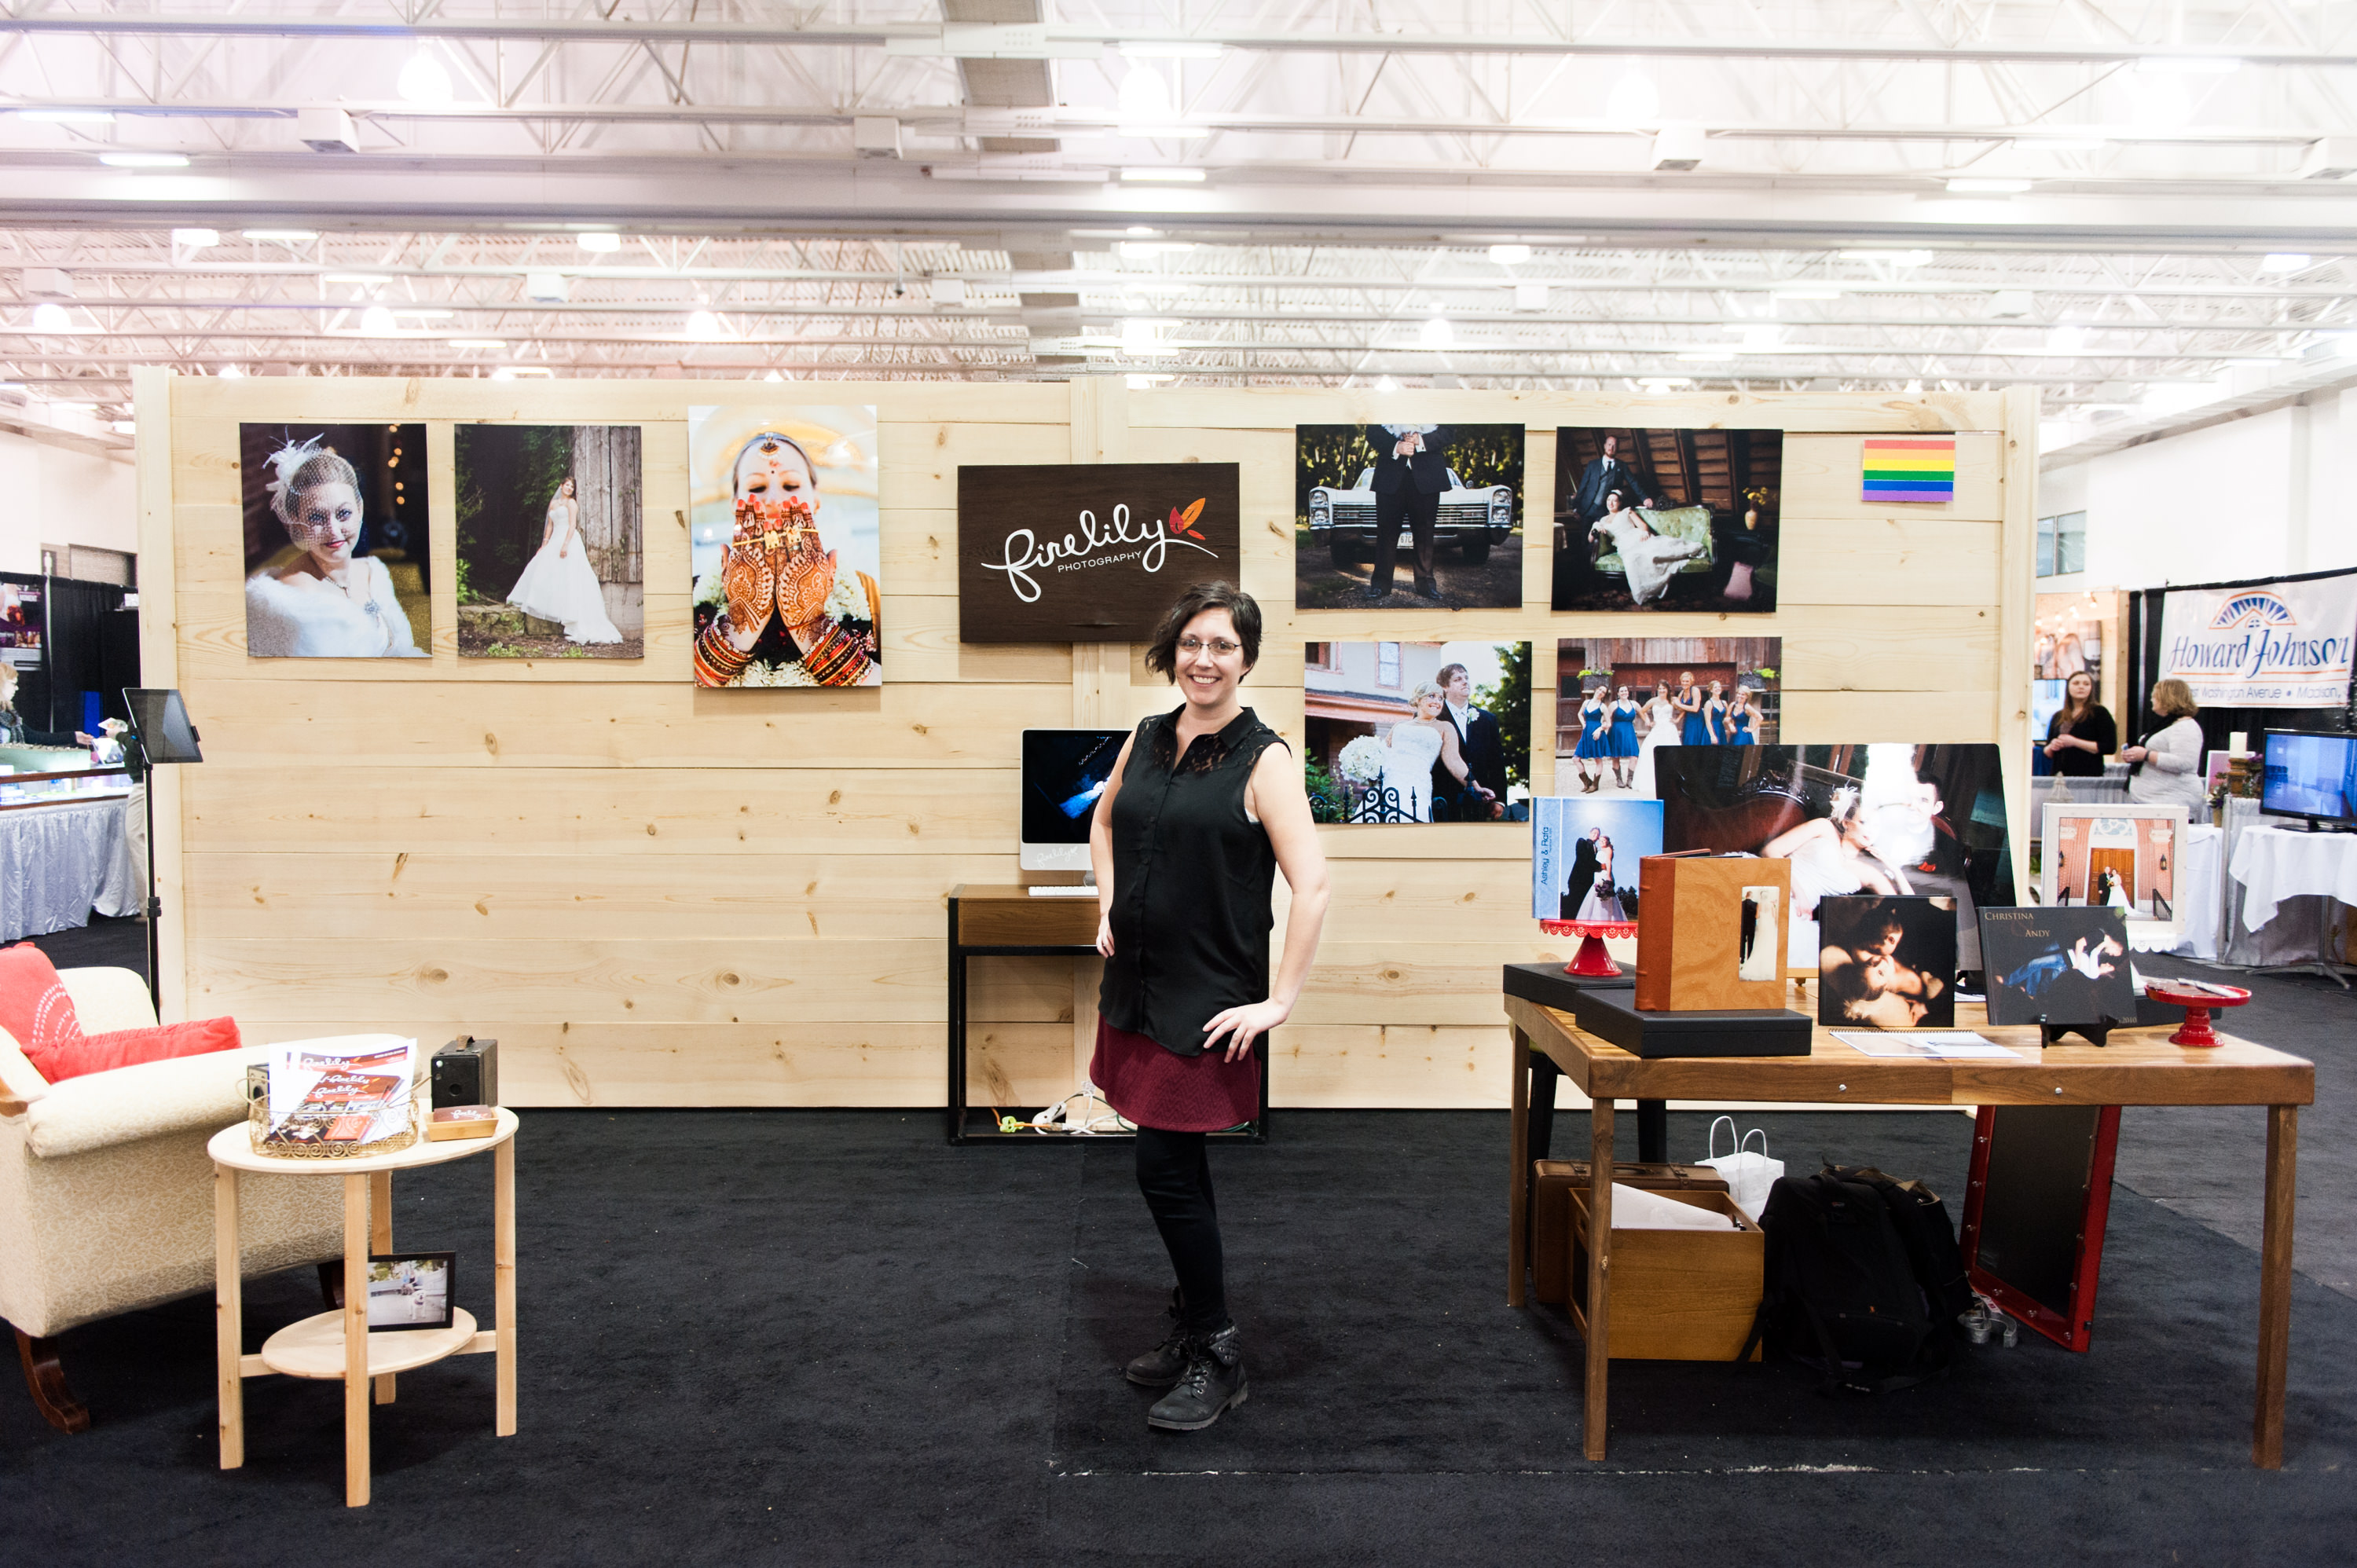 Firelily Photography Madison, WI 2017 Winter Bridal Show Booth | Beautiful Wedding Photography Booth Setup with Jen Doser